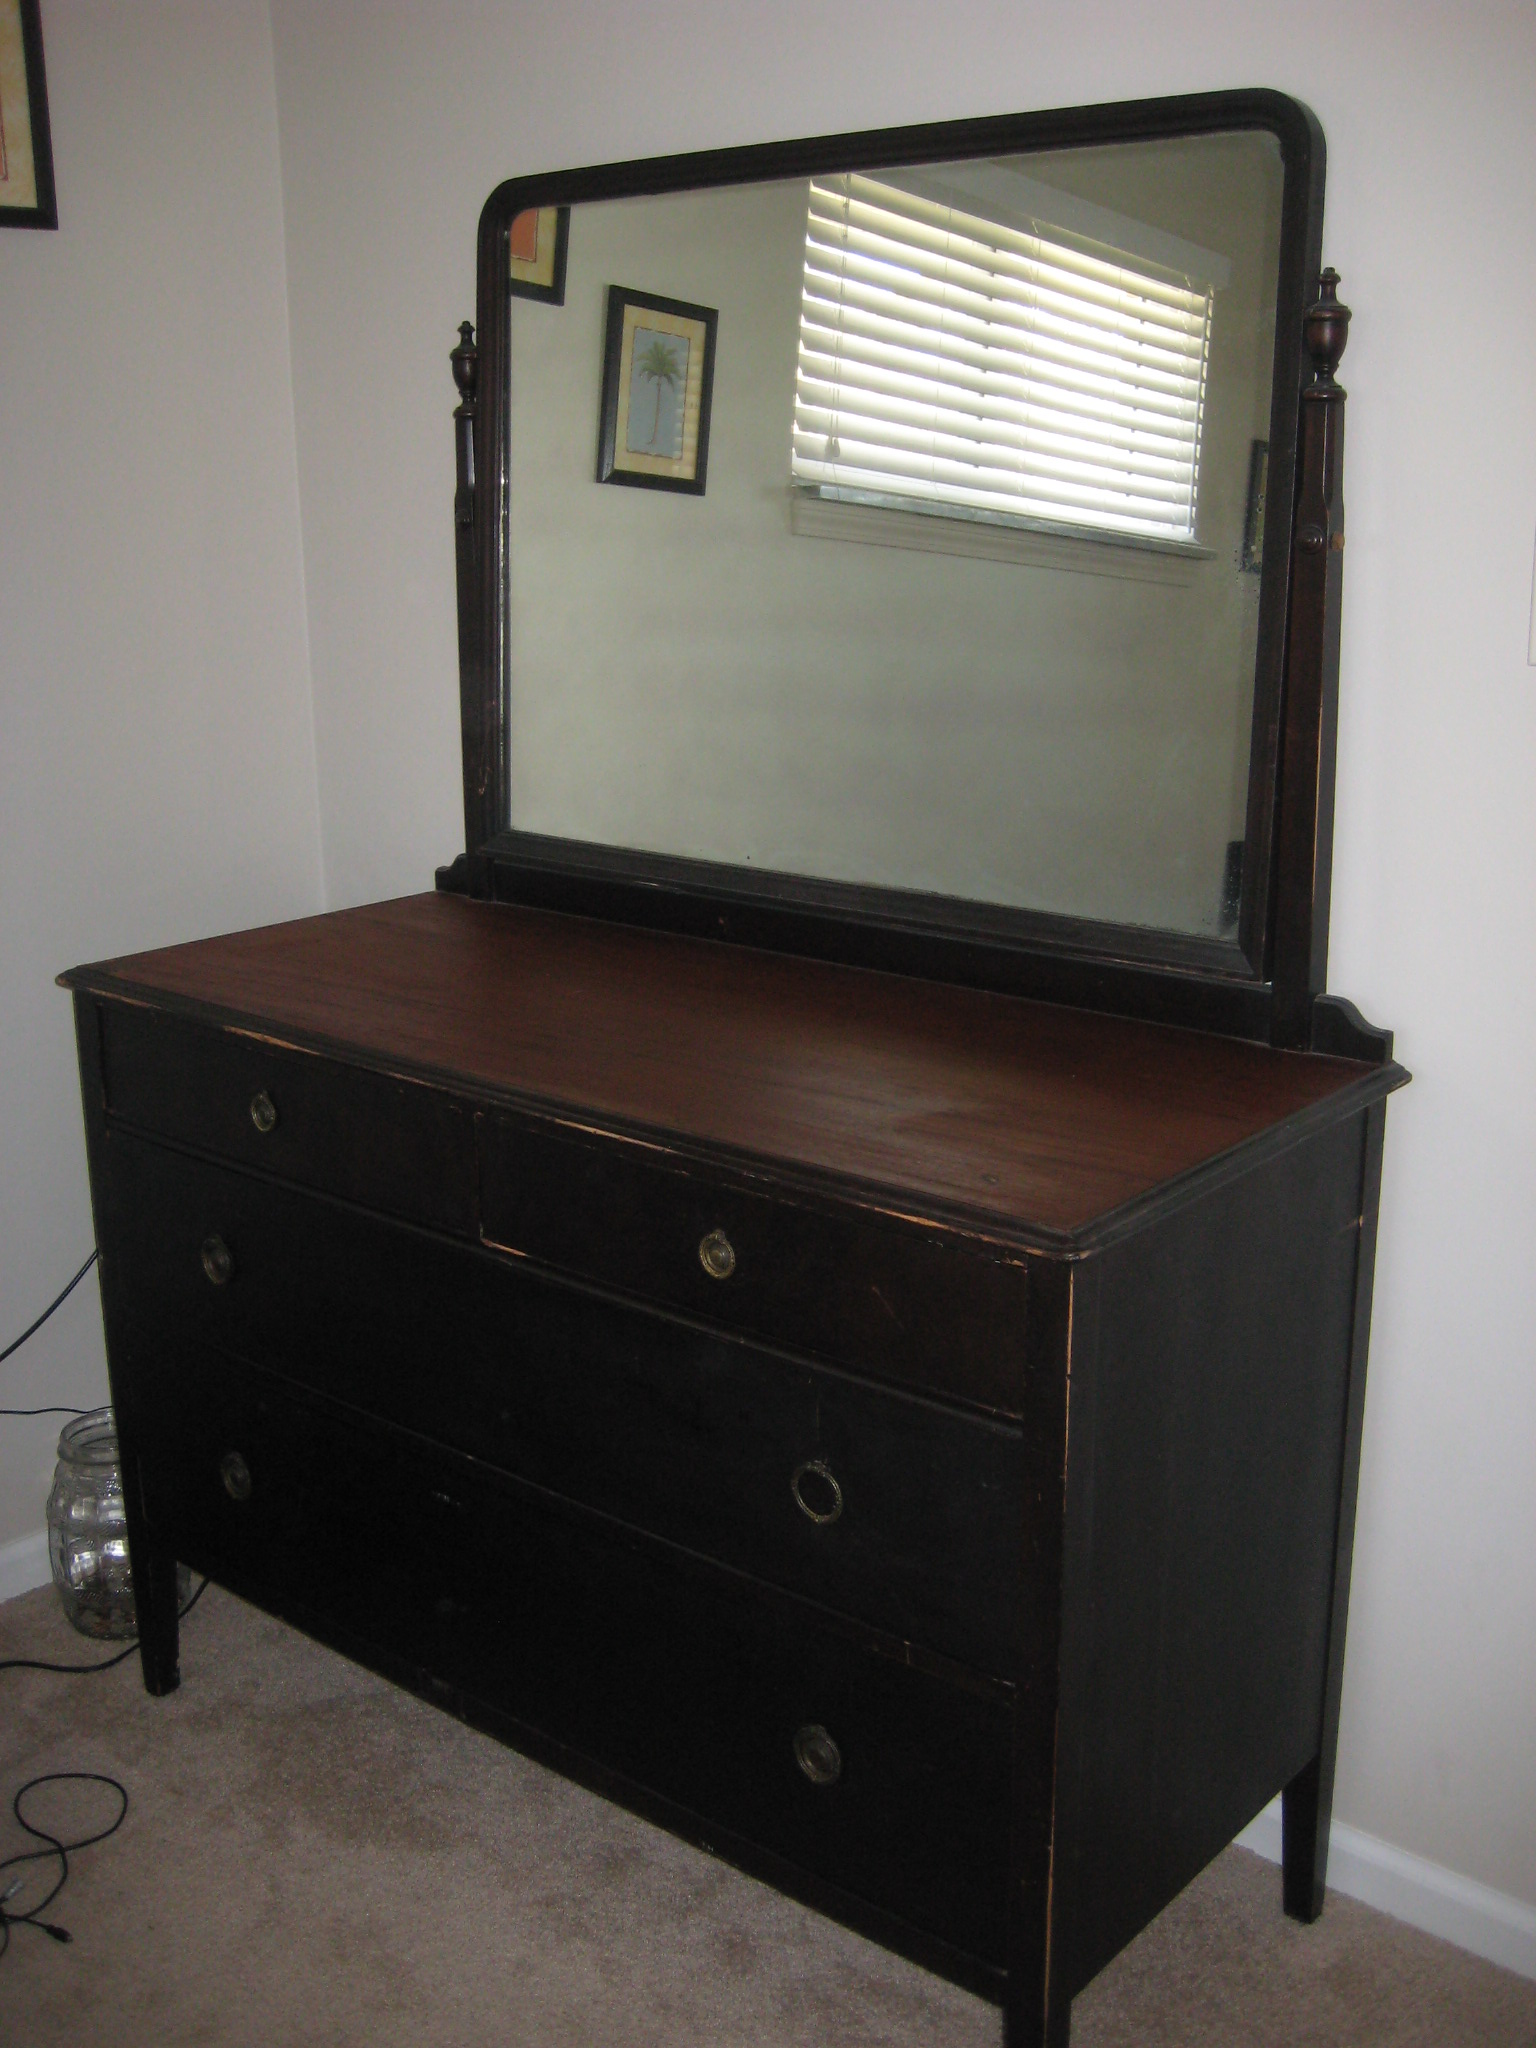 Paine Furniture Co Dresser Antique Appraisal Instappraisal